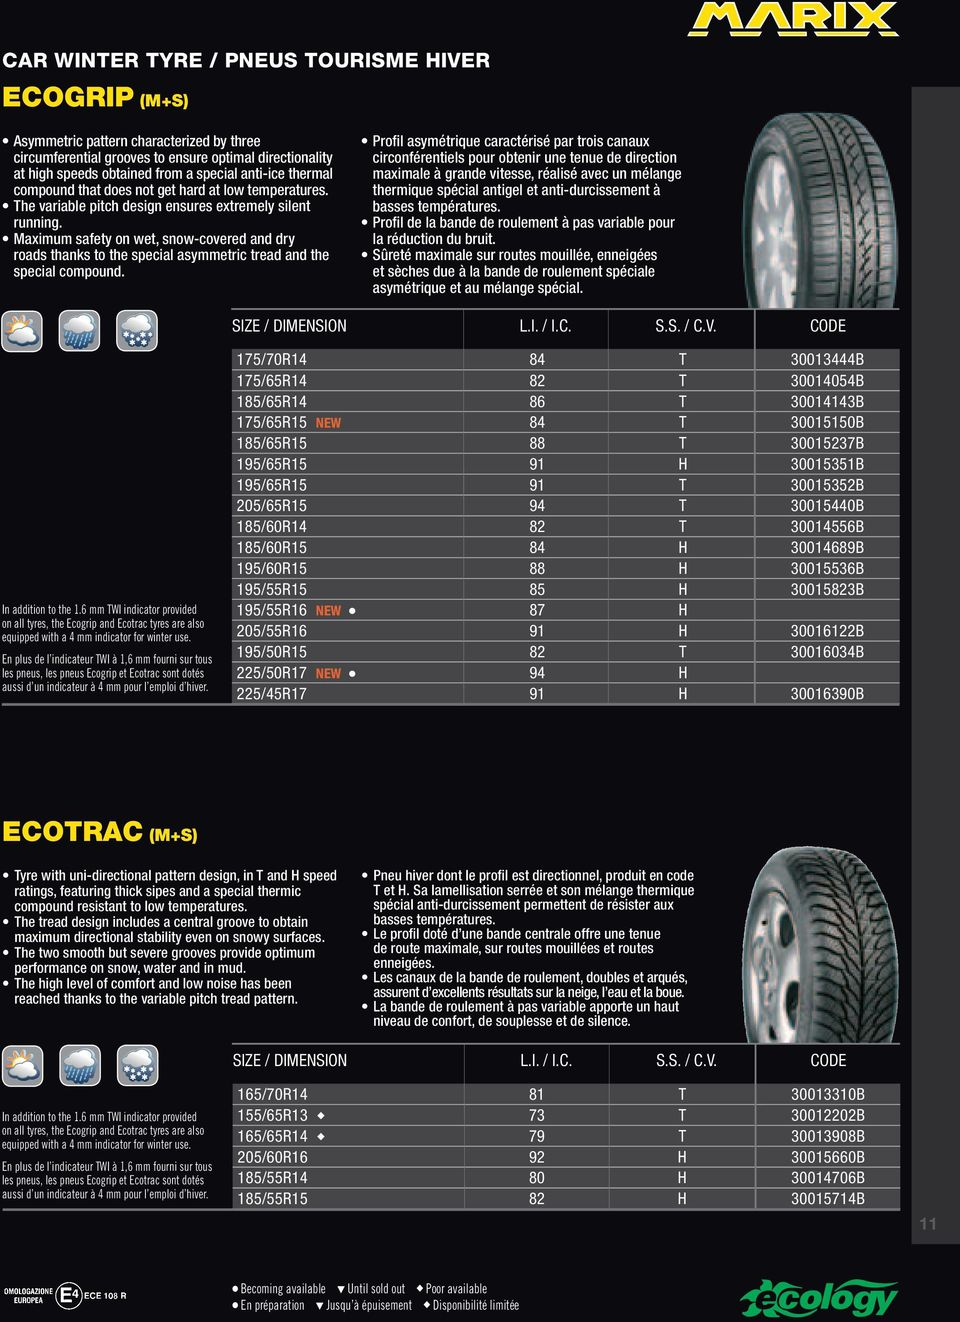 Maximum safety on wet, snow-covered and dry roads thanks to the special asymmetric tread and the special compound.